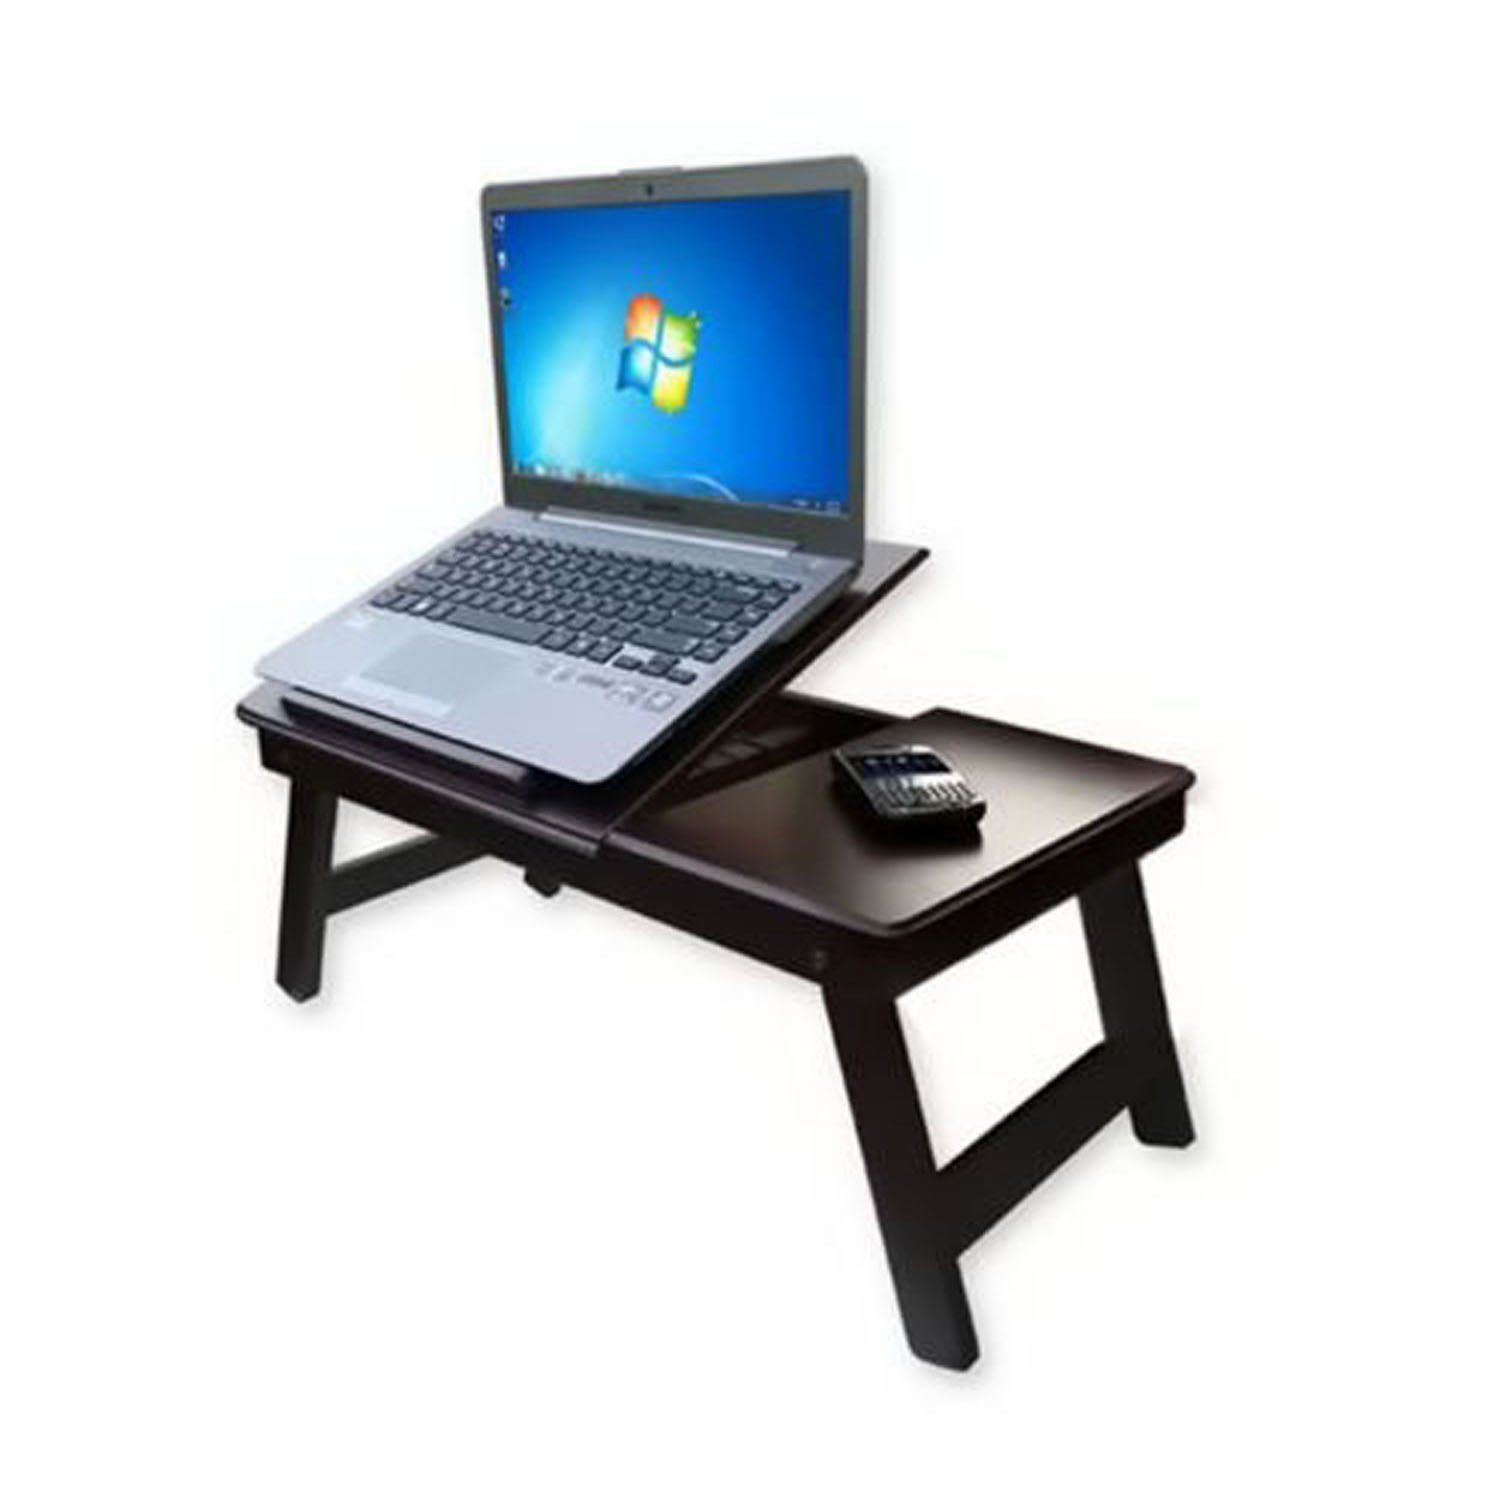 Artesia Wooden Laptop Table Foldable Amazon Electronics